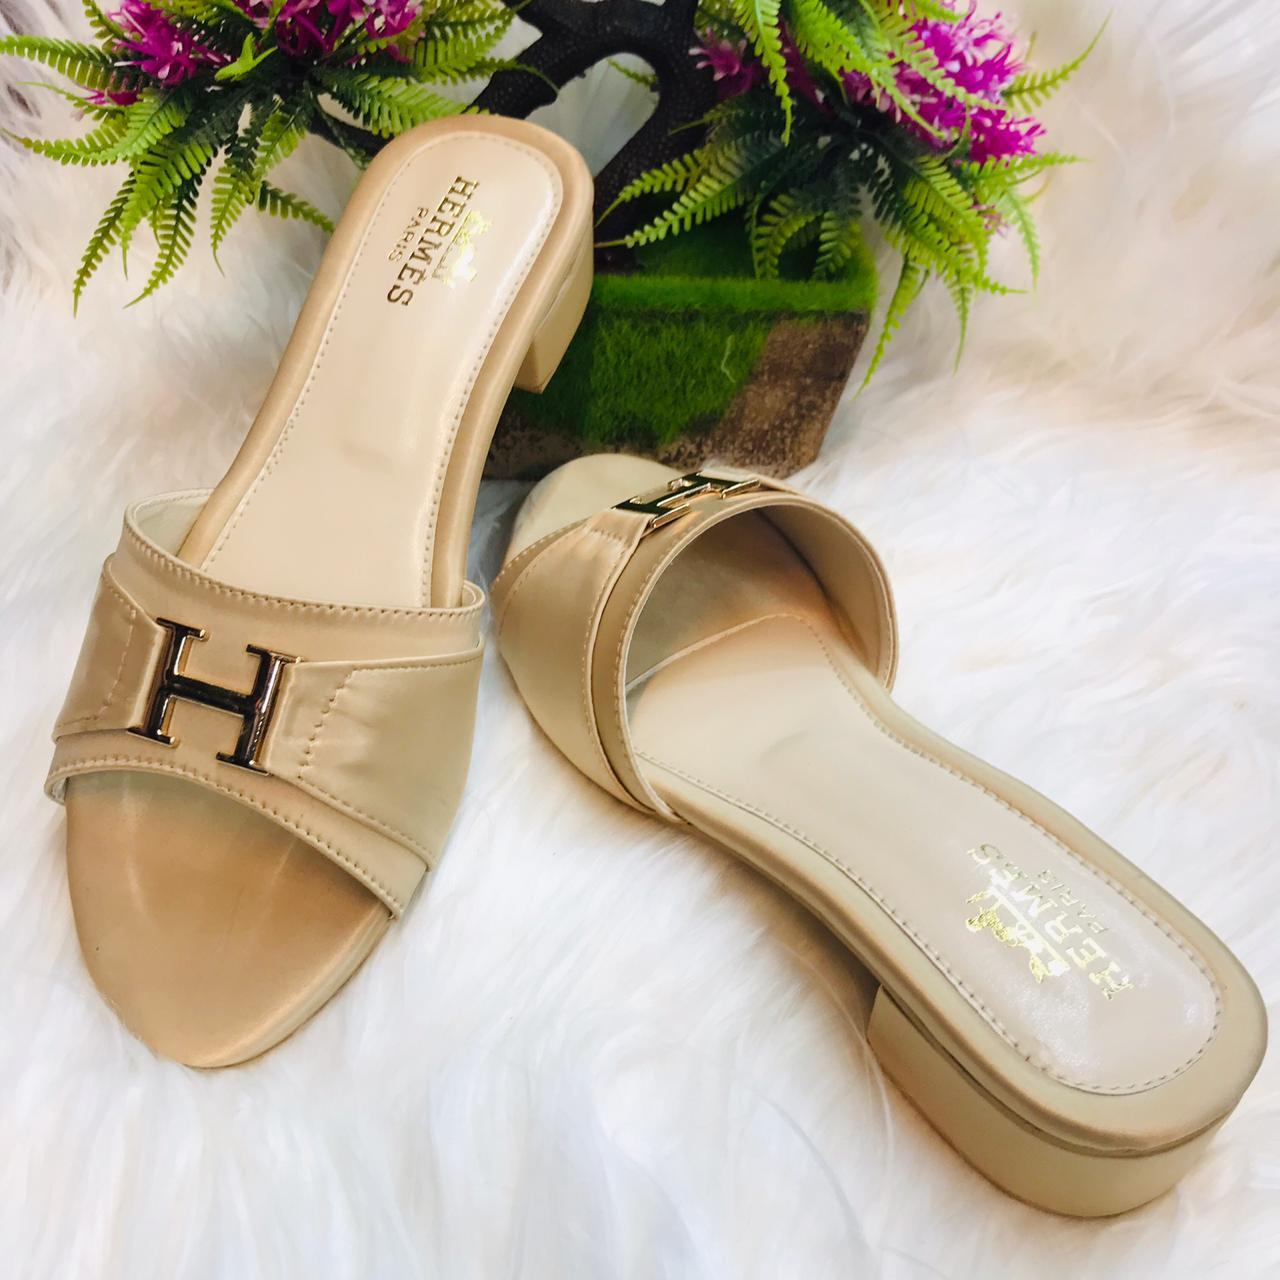 edf10b02ec7e Buy Shopping Gallery shop-heeled-sandals at Best Prices Online in ...